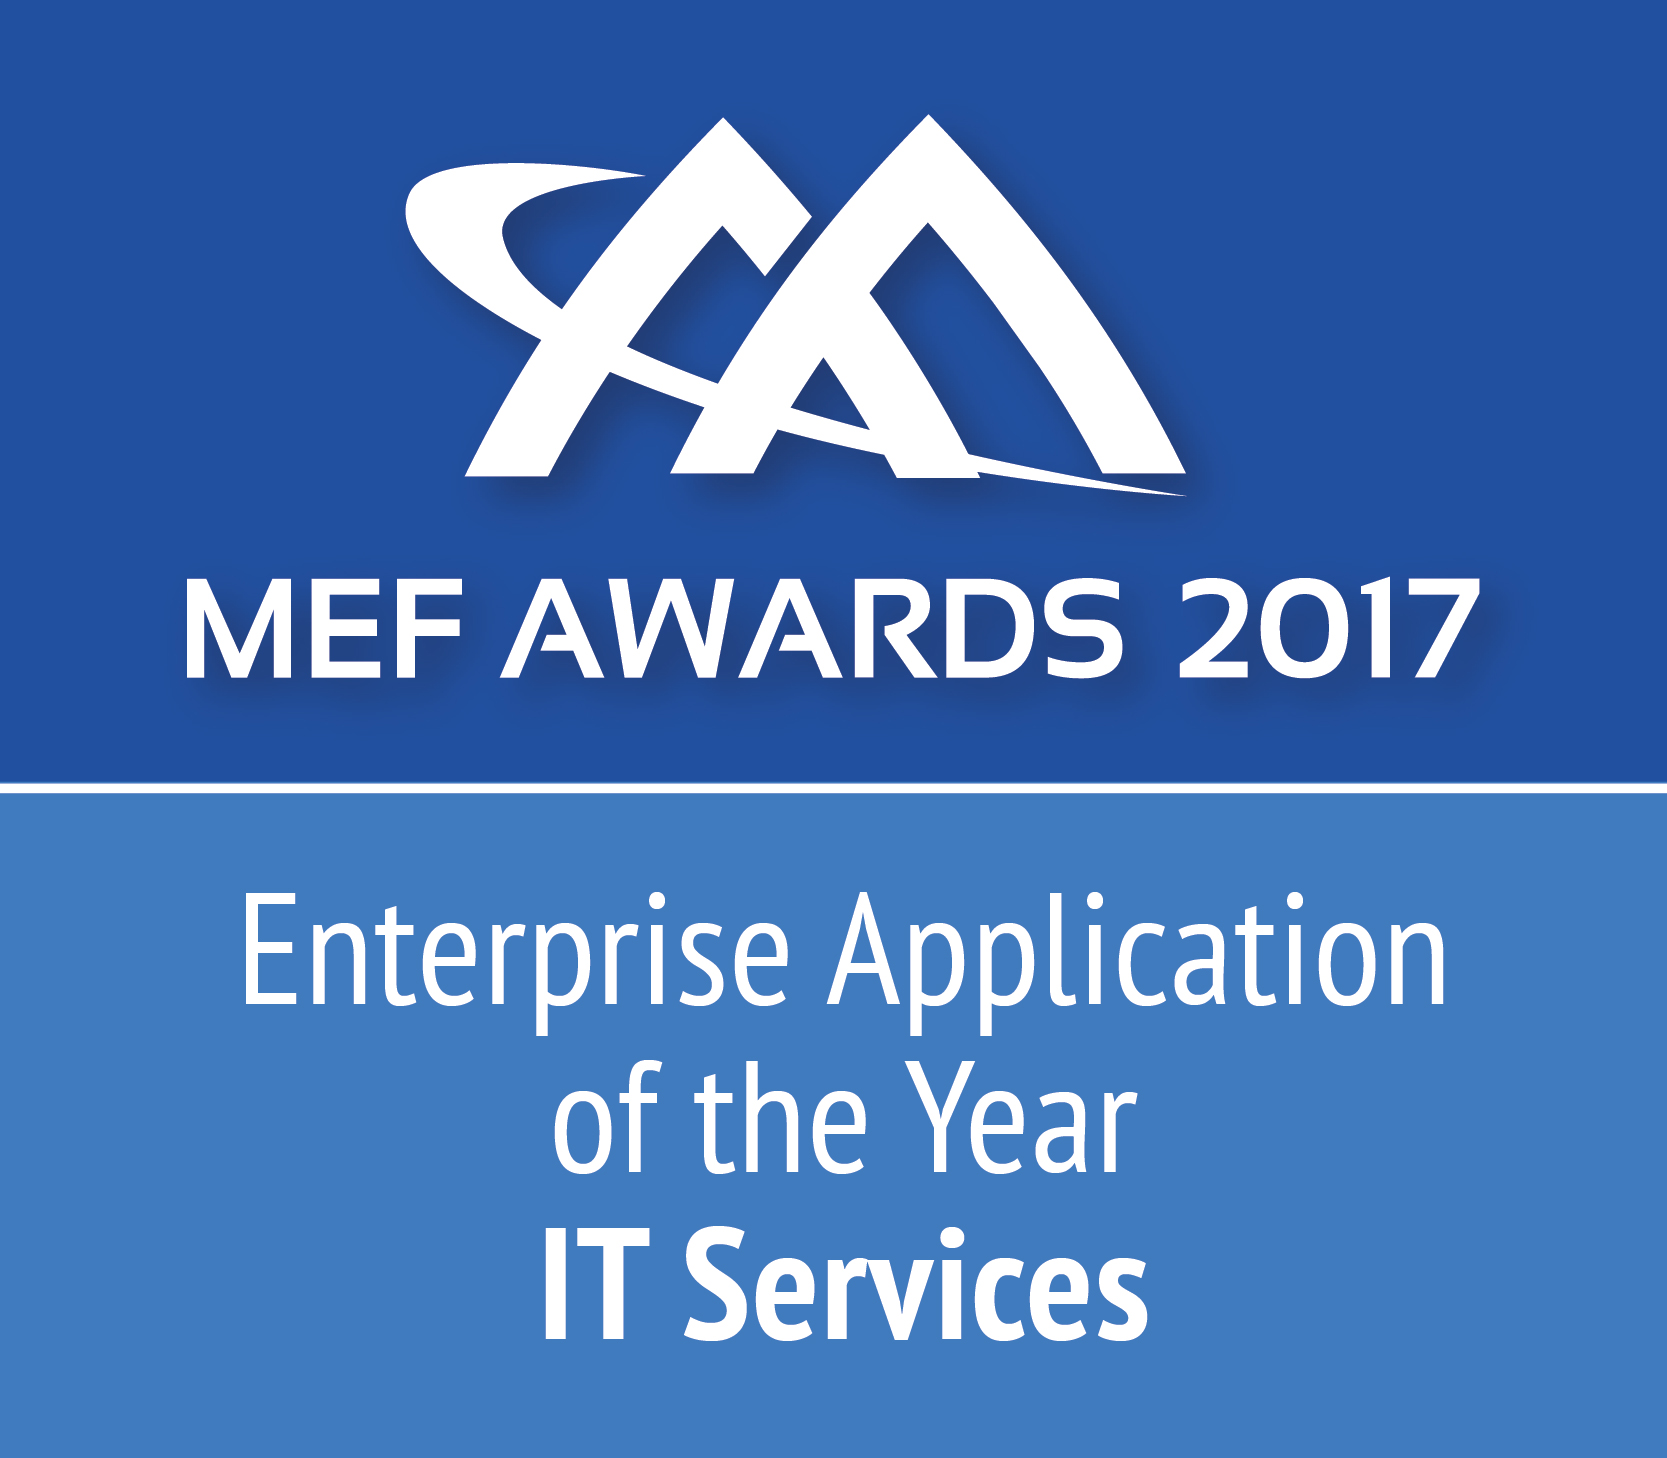 MEFAward2017_EnterpriseAppAwards_IT-Services_r1